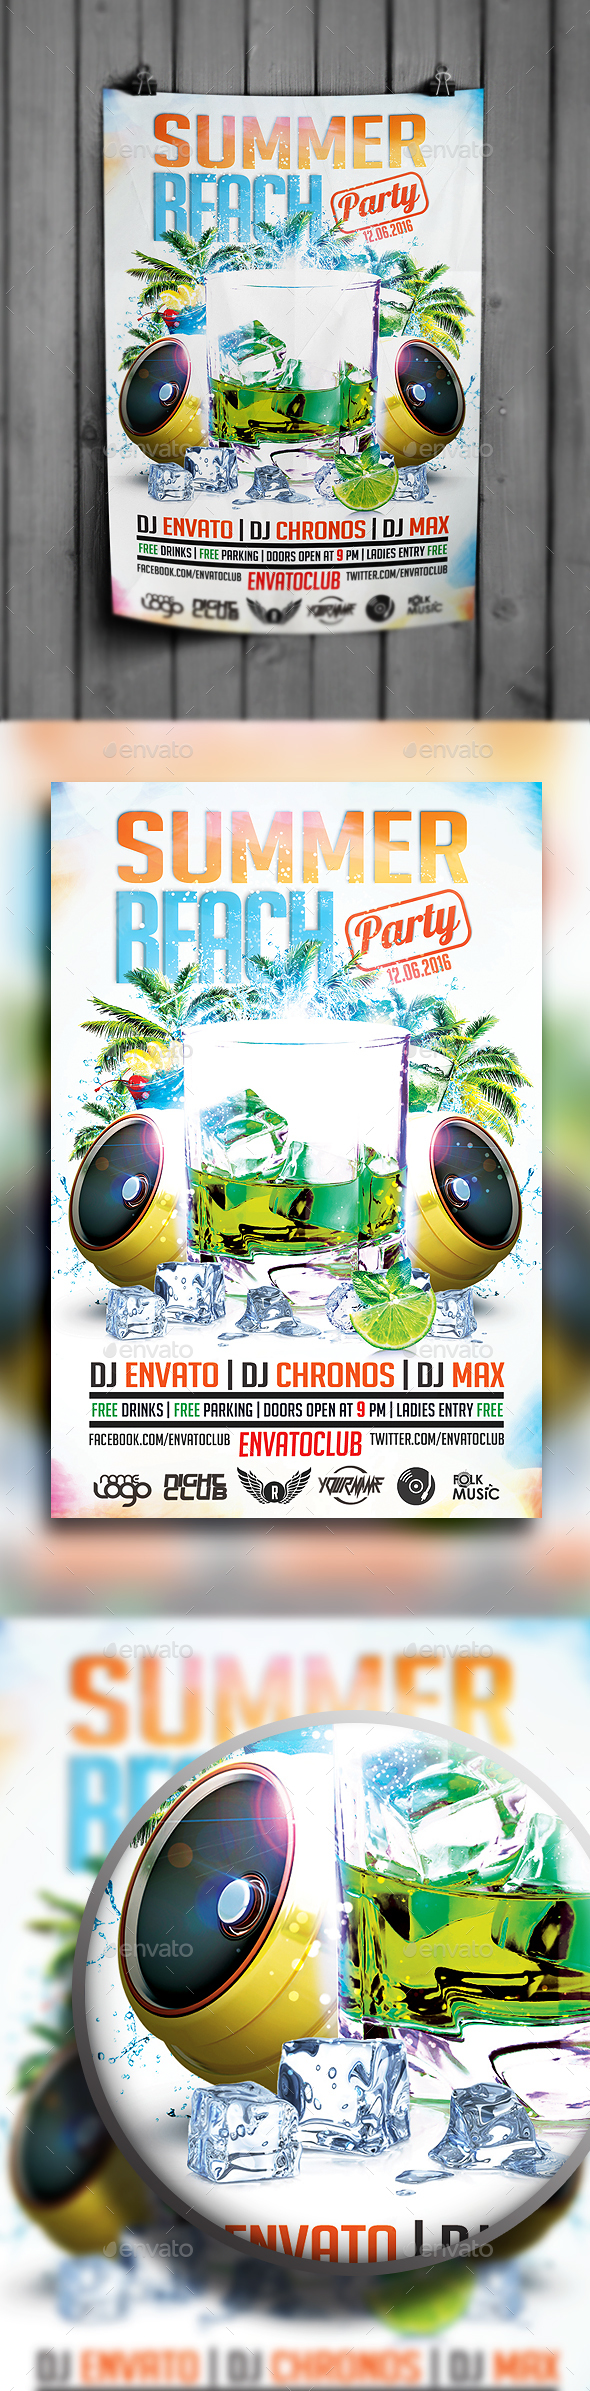 Summer Beach Party Vol.2 - Clubs & Parties Events